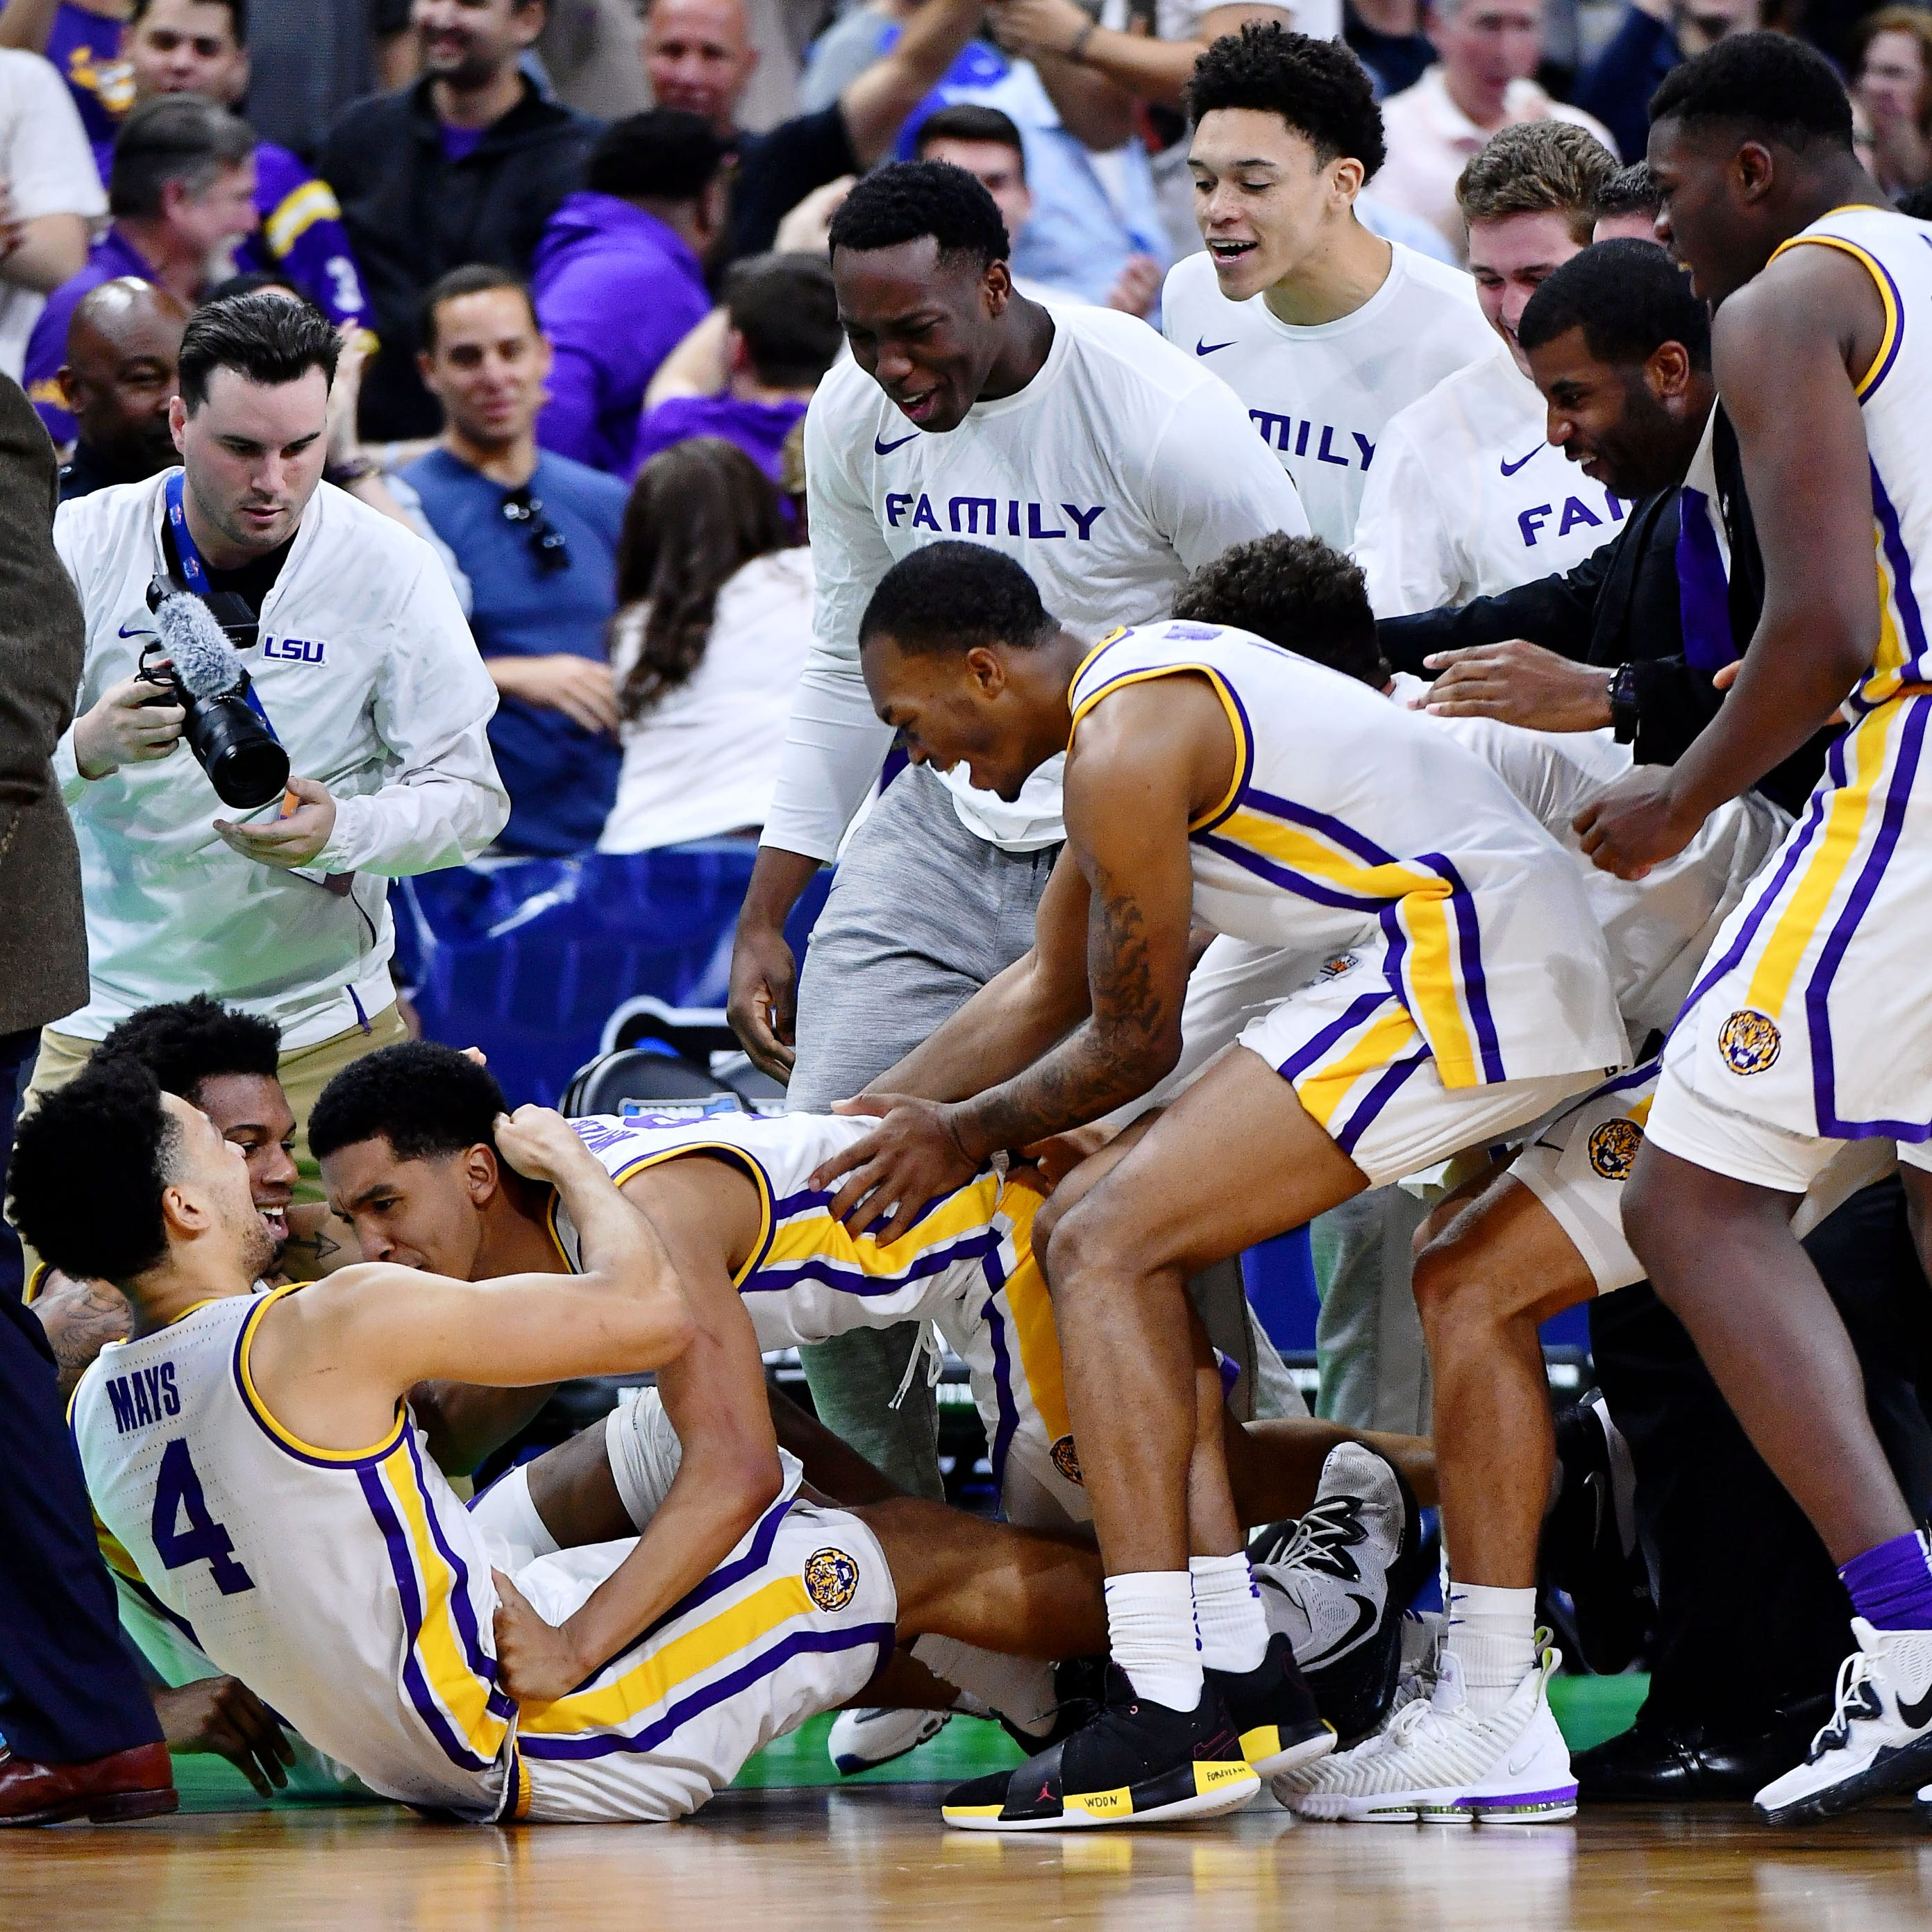 NCAA Tournament: LSU tops Maryland on Waters' layup to advance to Sweet 16